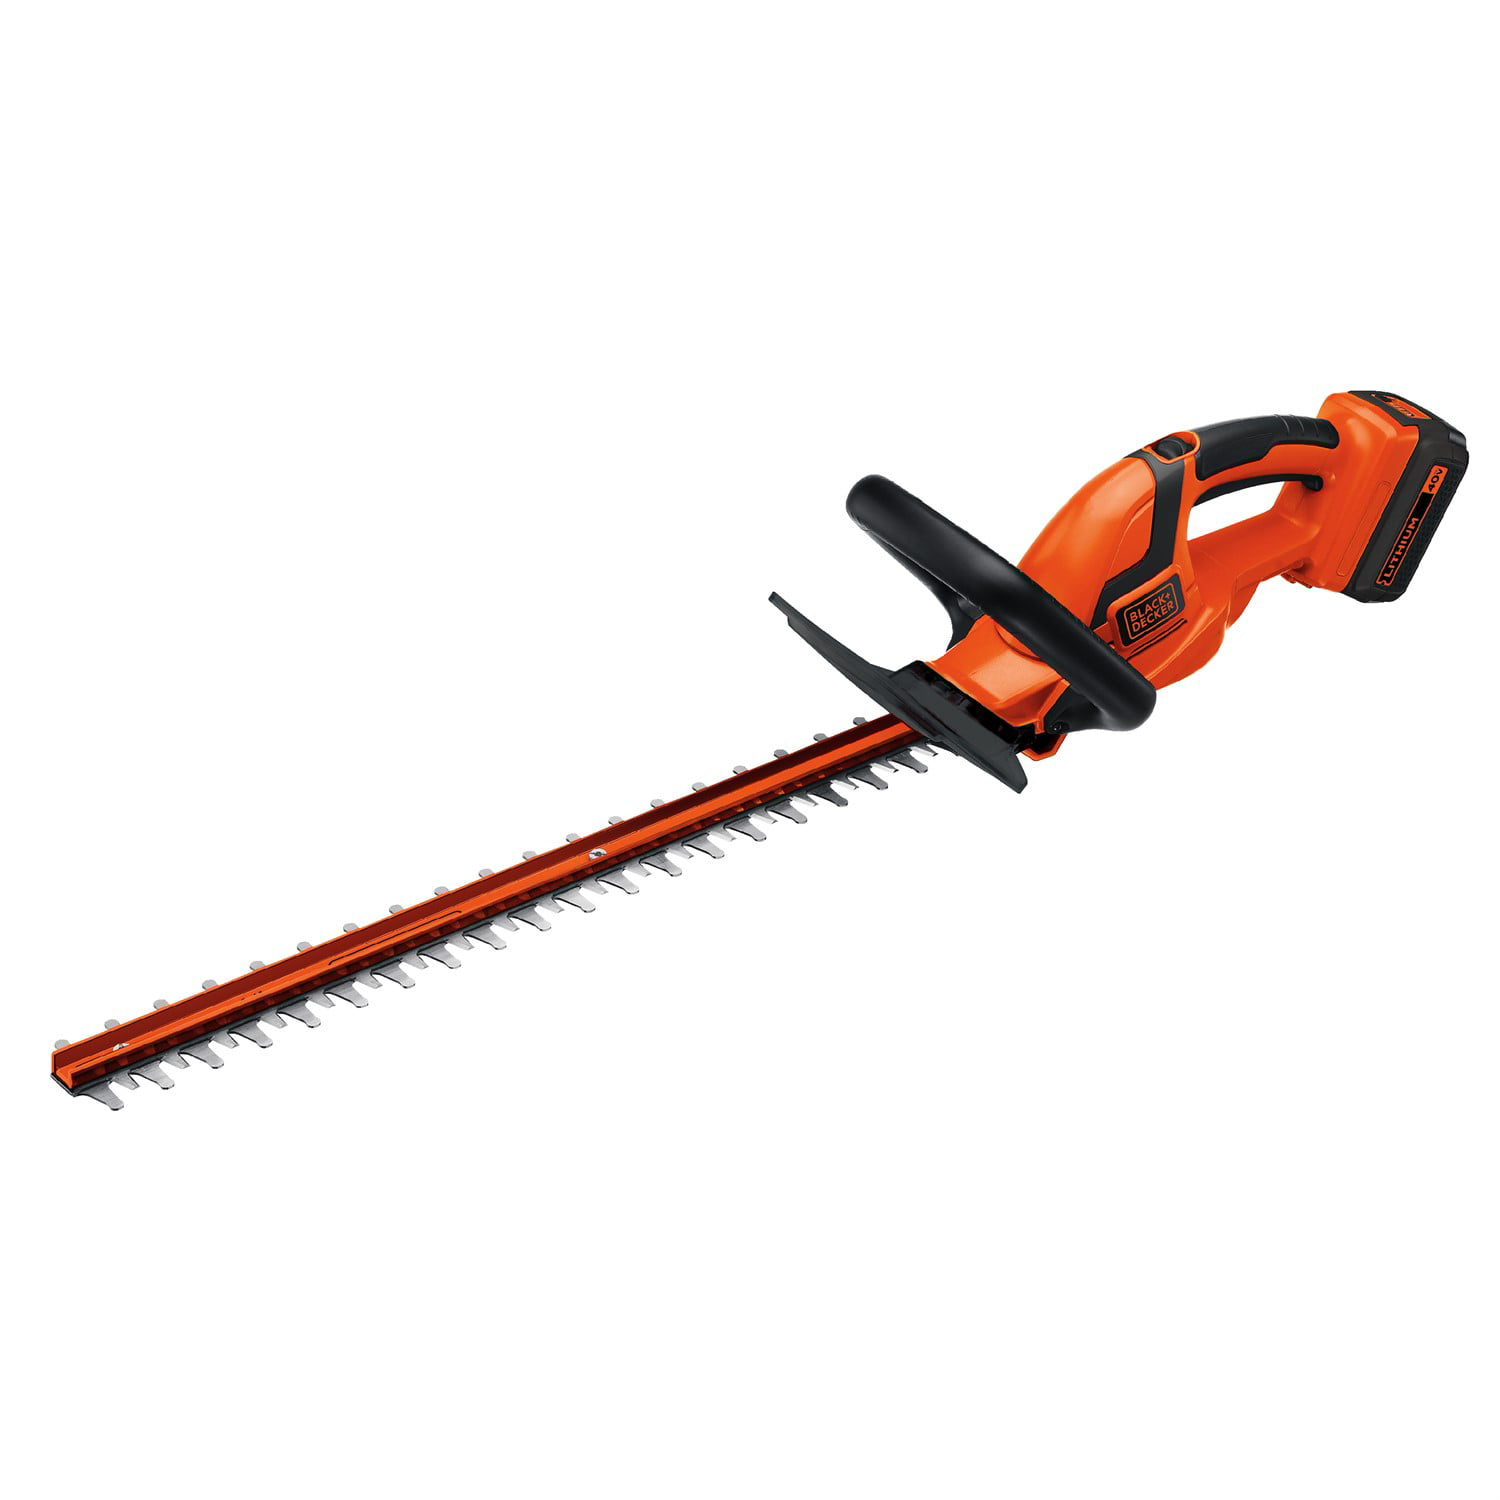 "Black & Decker LHT2436 40V MAX* Lithium-Ion 24"" Cordless Hedge Trimmer by Stanley Black & Decker"